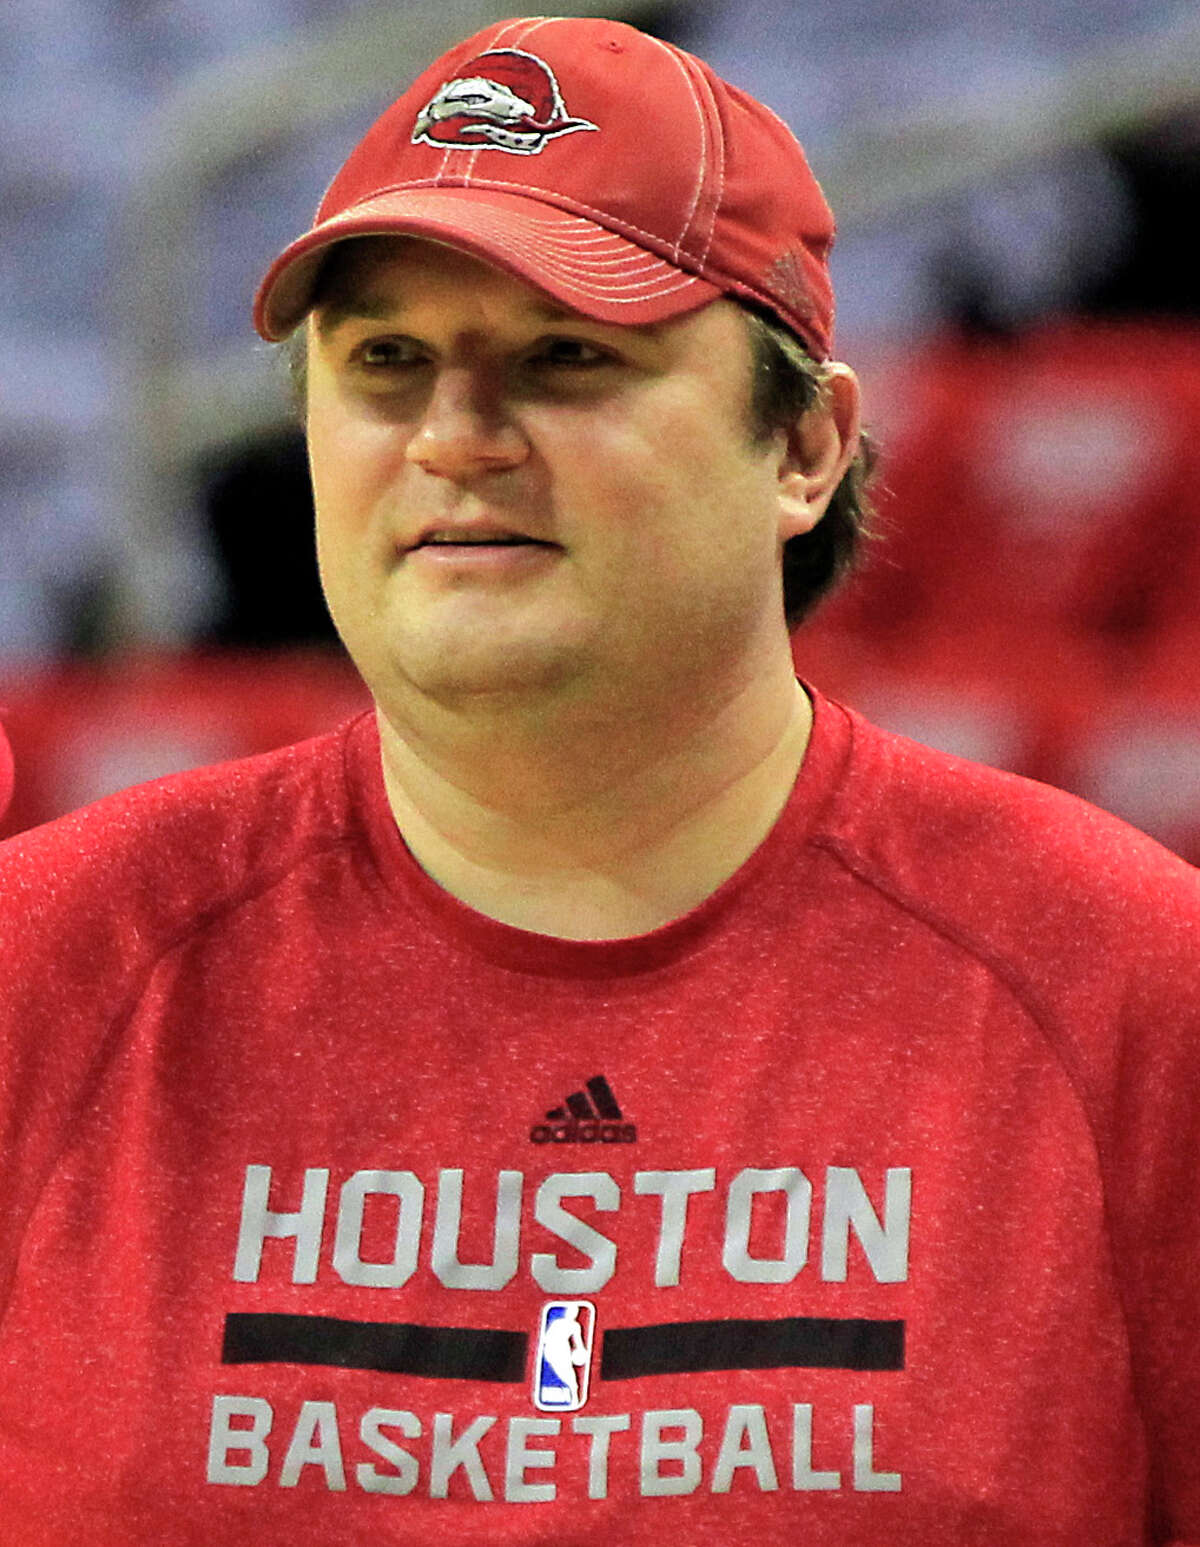 Houston Rockets General Manager Daryl Morey during the Rockets shoot around before Game 3 of the NBA Western Conference Finals at the Toyota Center on Saturday, May 23, 2015, in Houston.